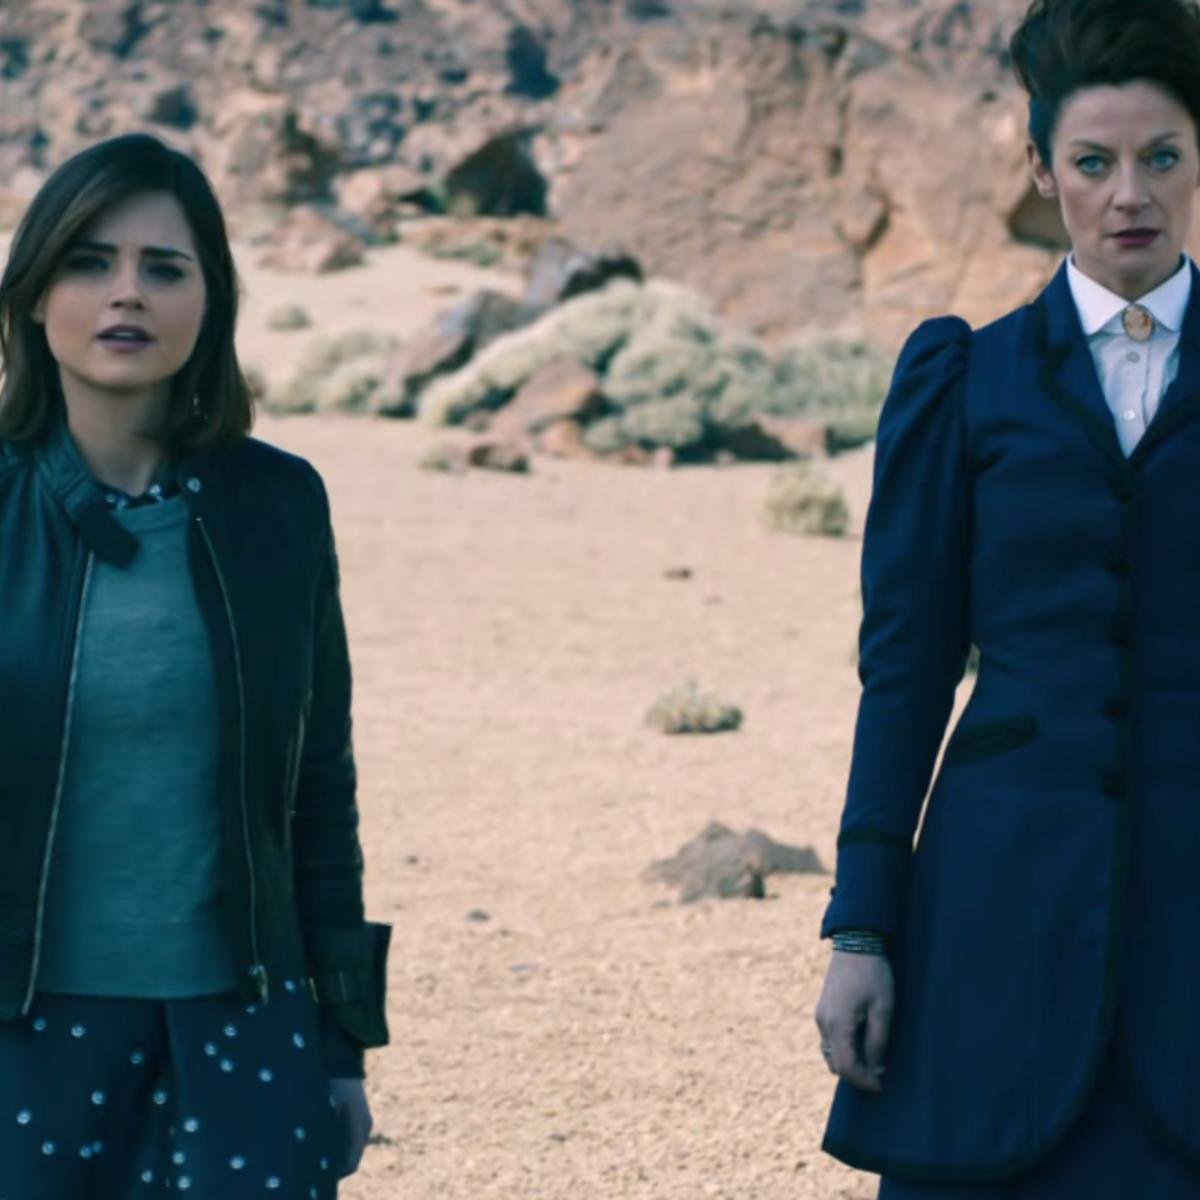 DoctorWho-Missy-Clara-screengrab.png